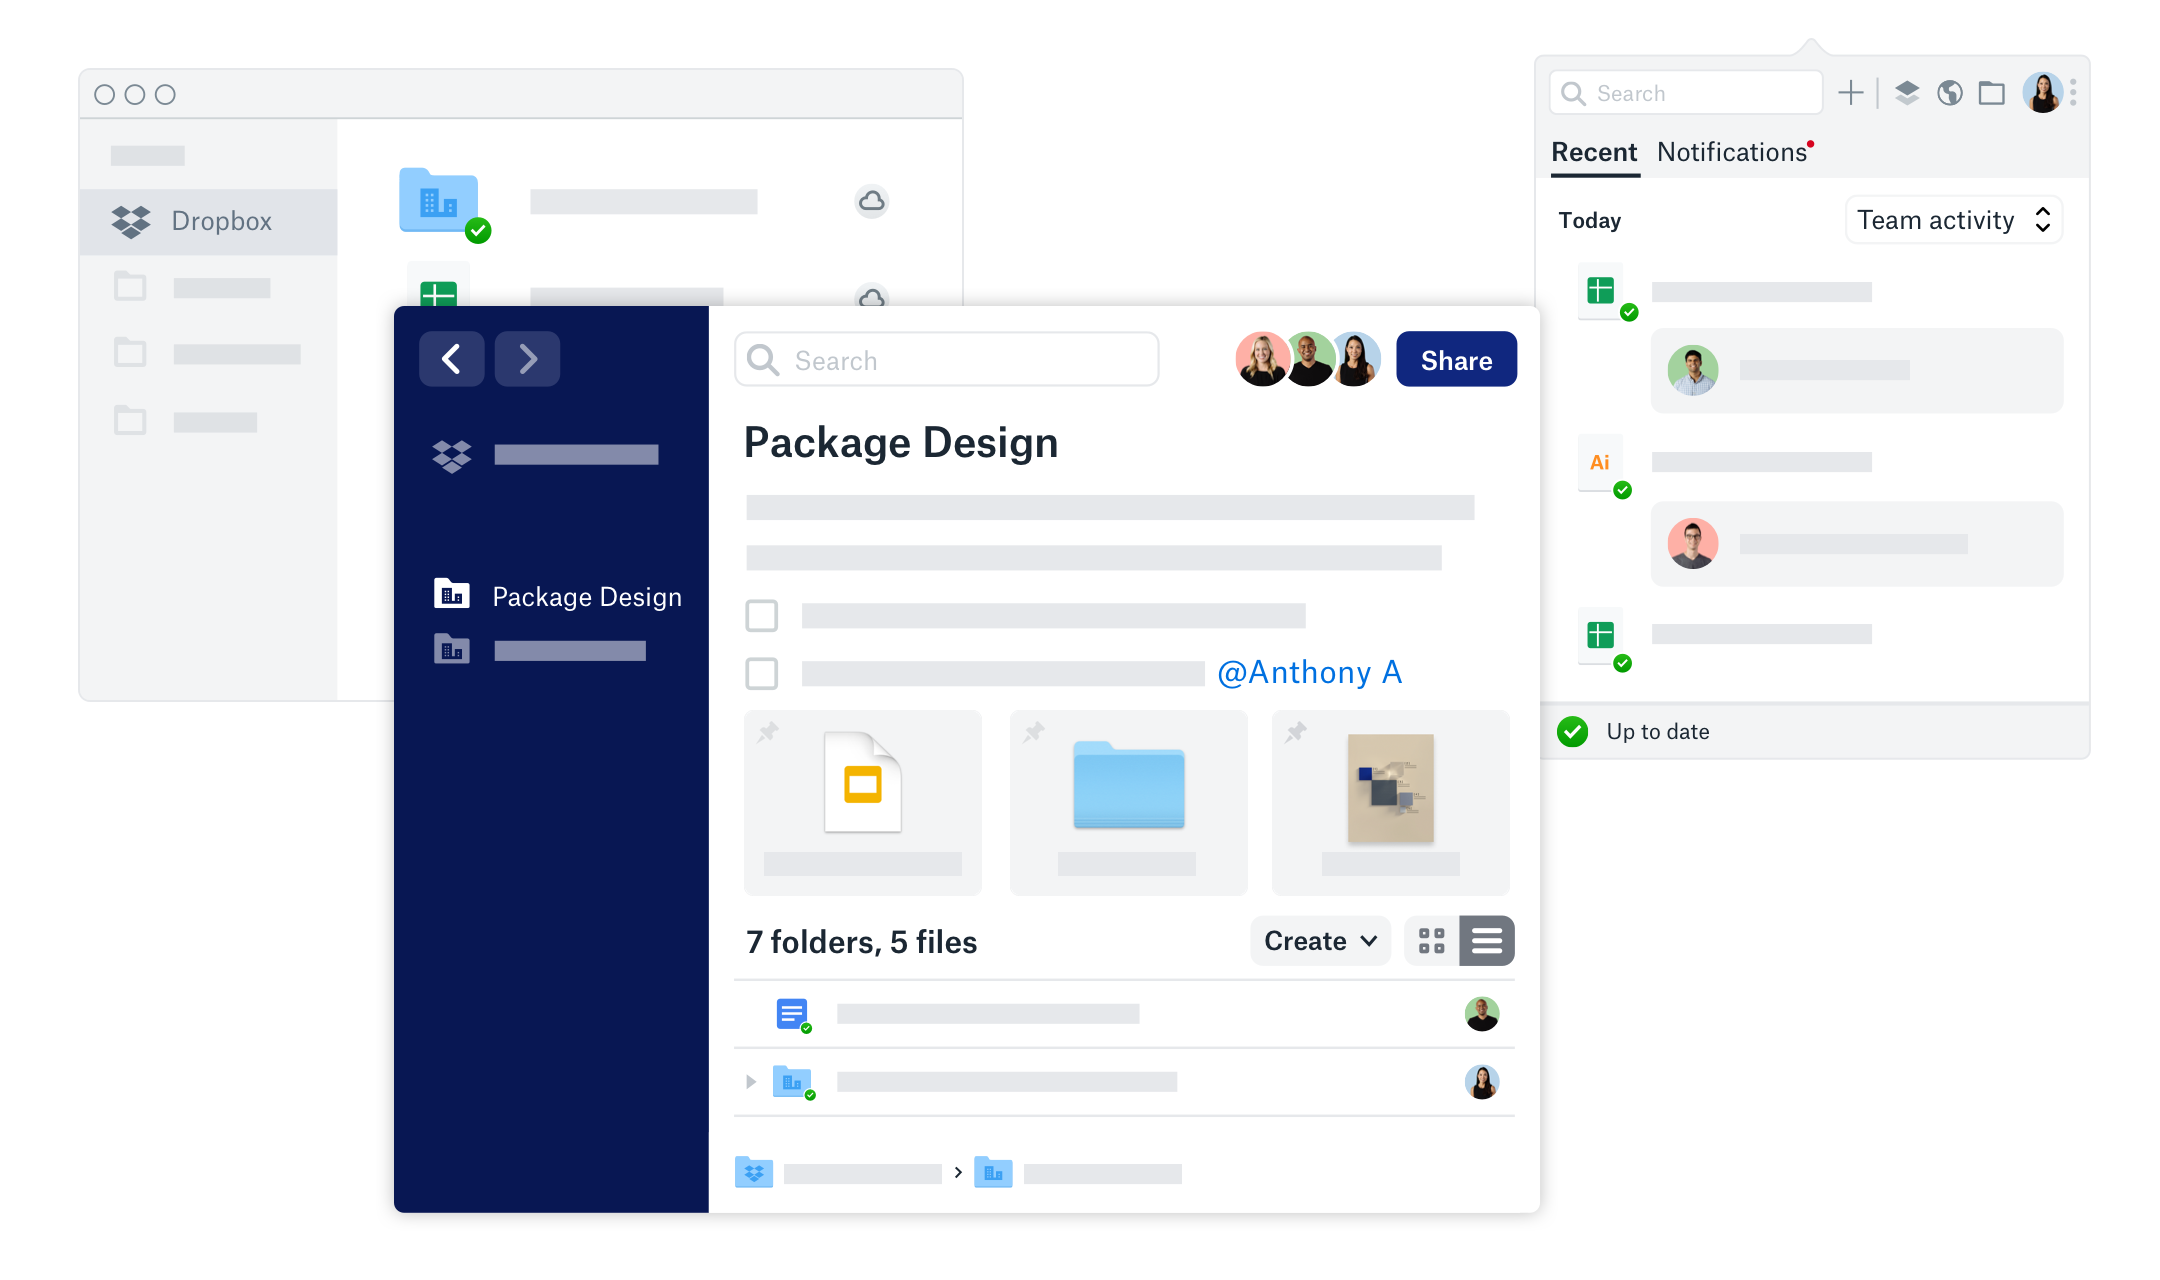 Dropbox's new desktop app is a radical overhaul